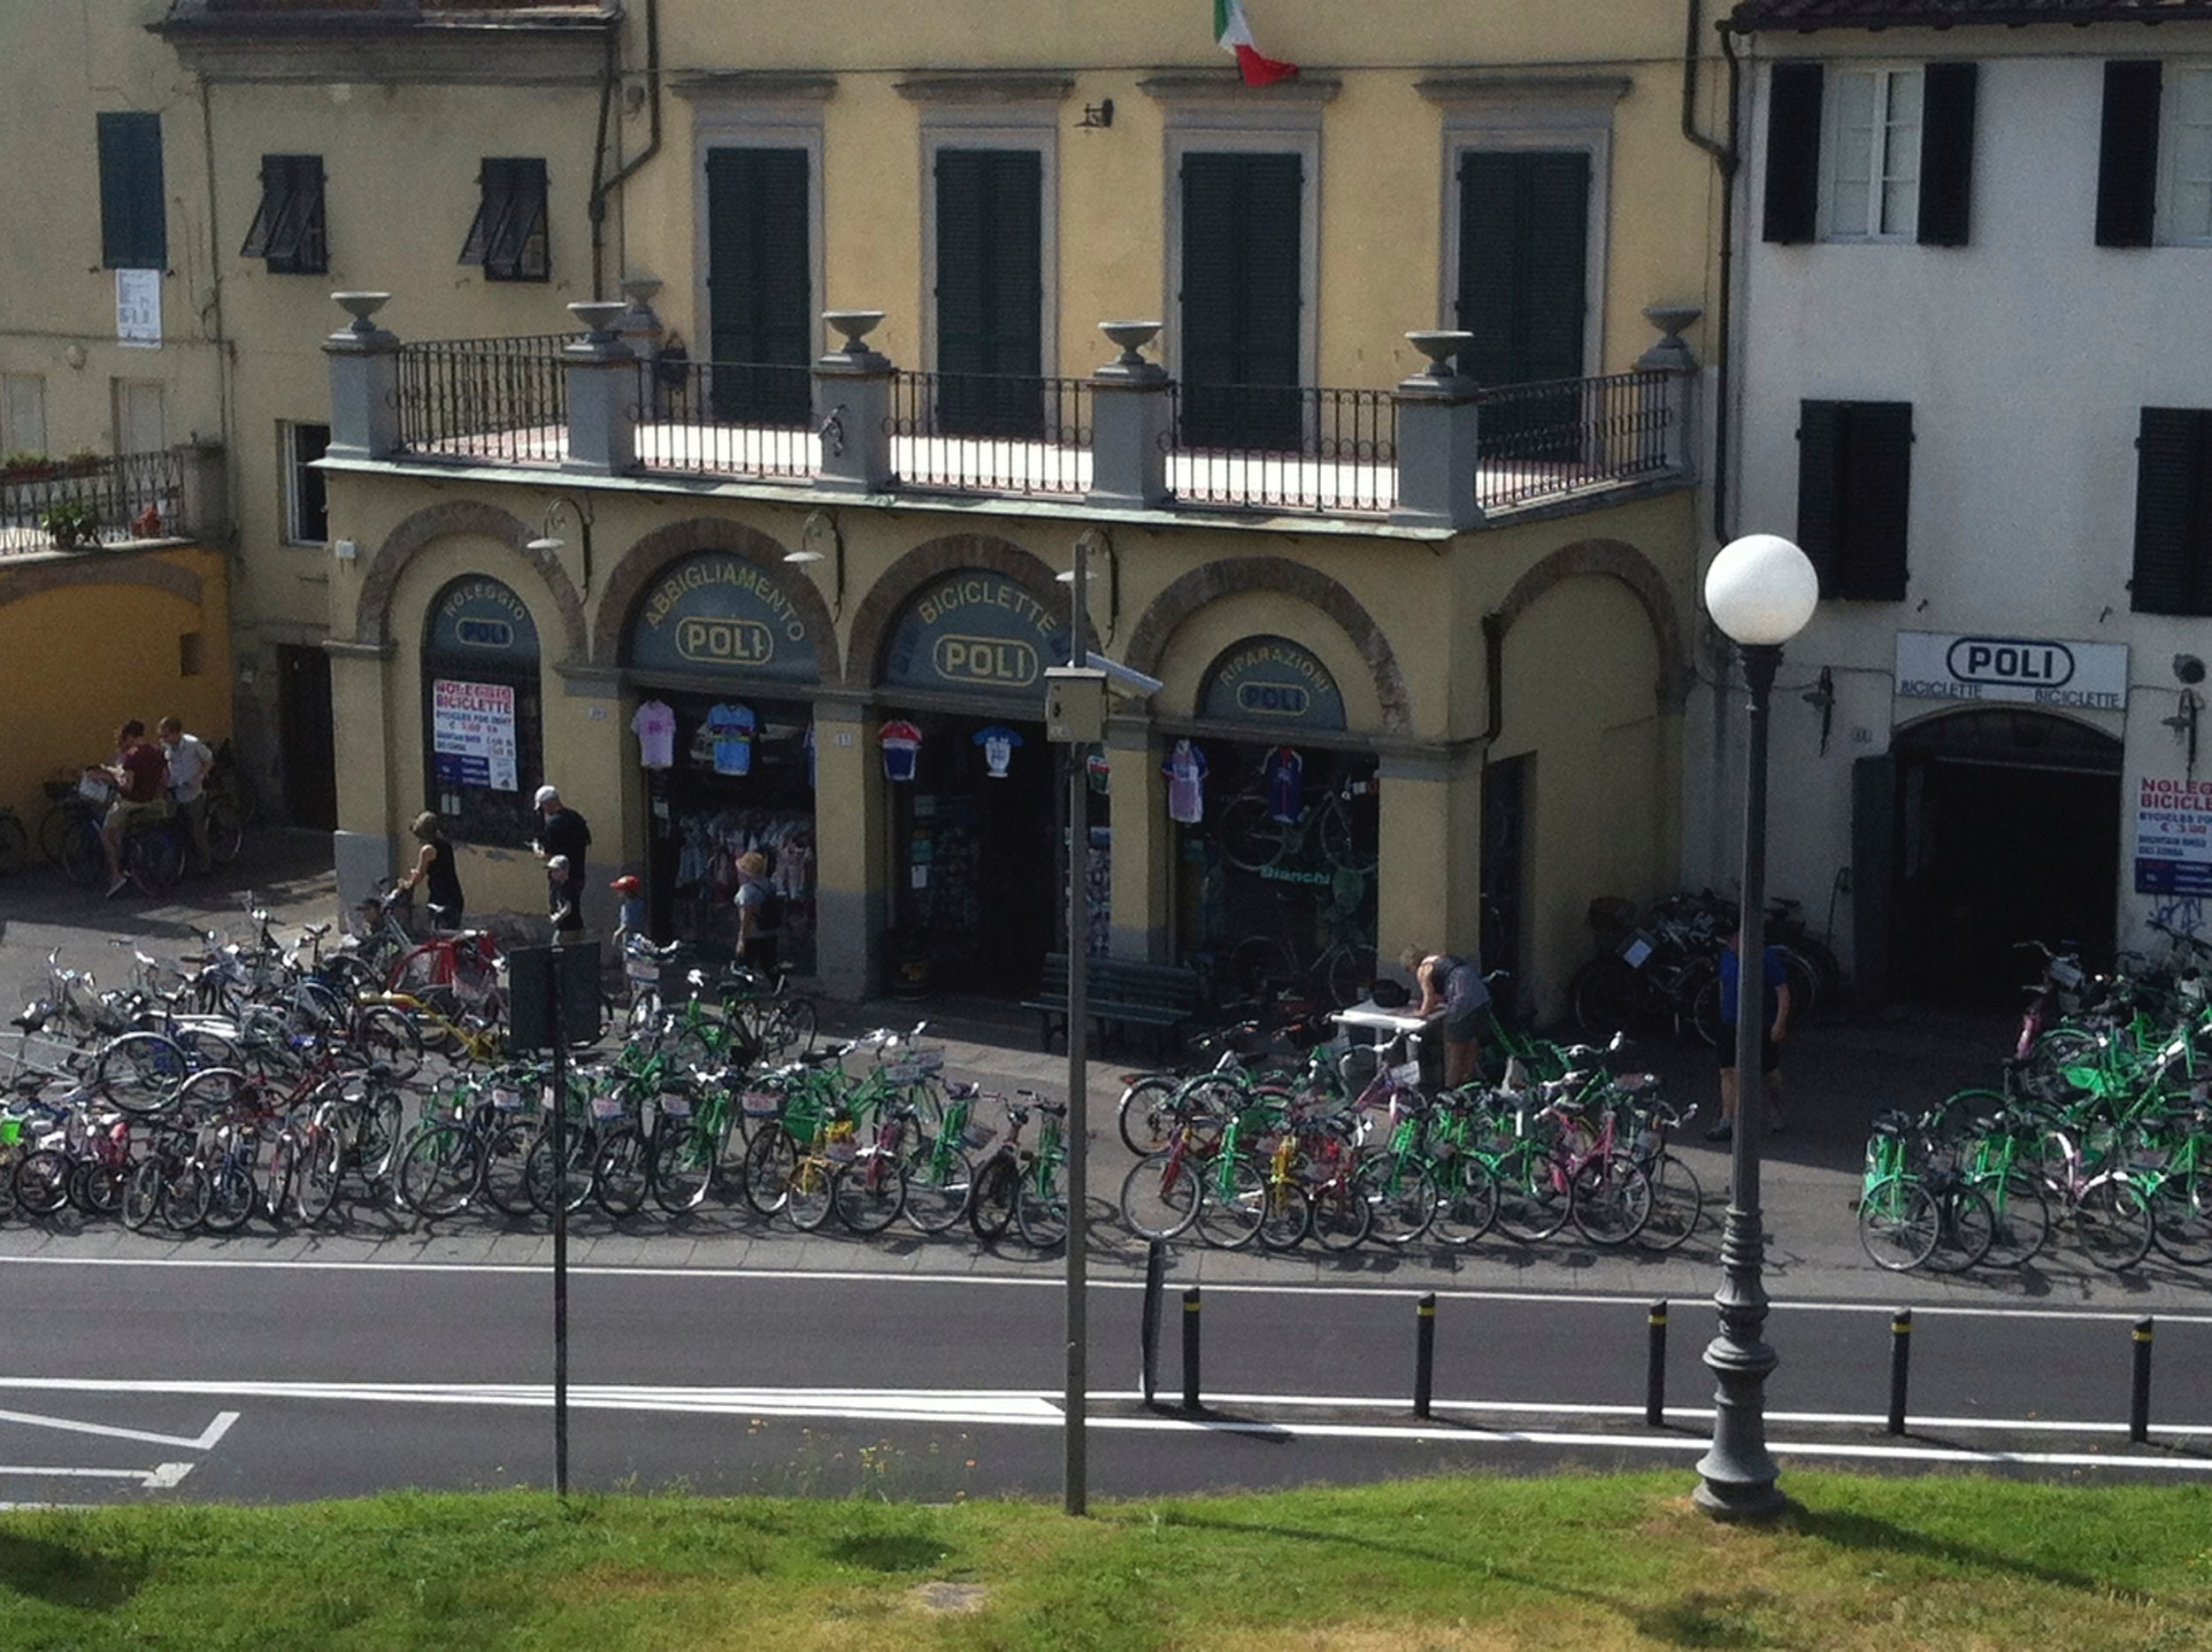 Bicilette Poli, located in Piazza San Pietro, rents bicycles for touring the city and sightseeing along the top of the wall.